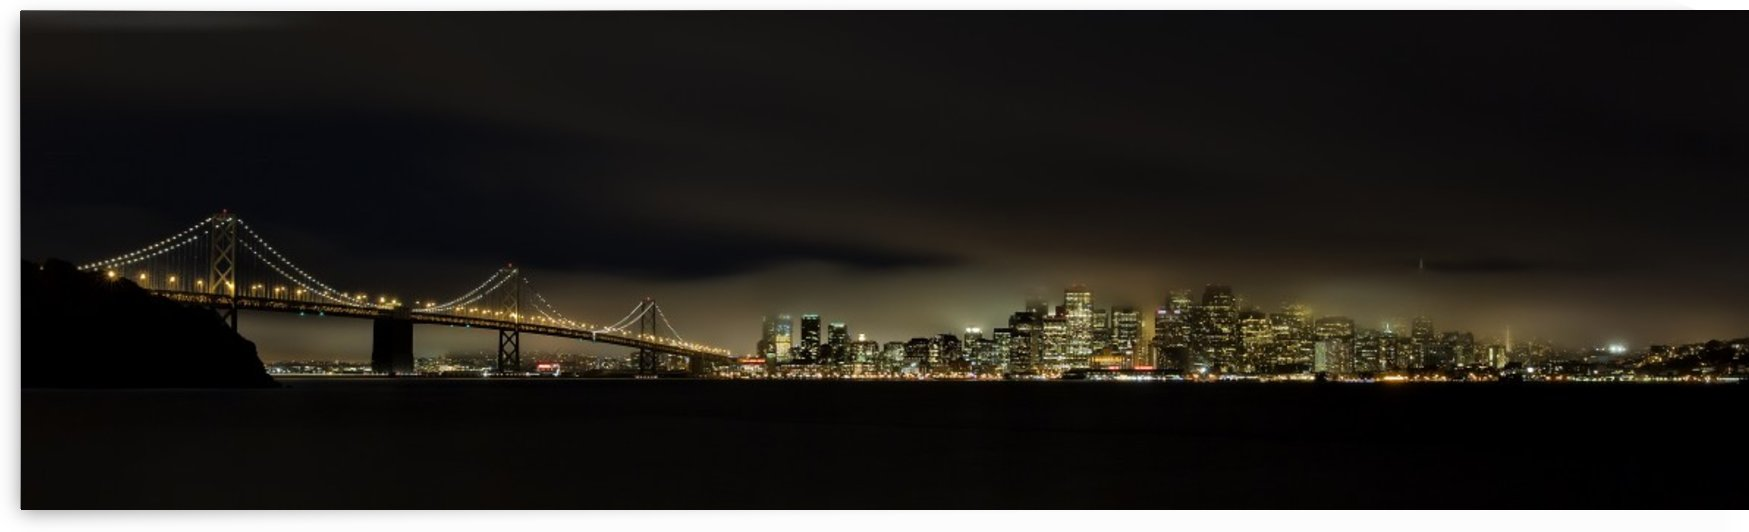 Bay Bridge San Francisco by 1x